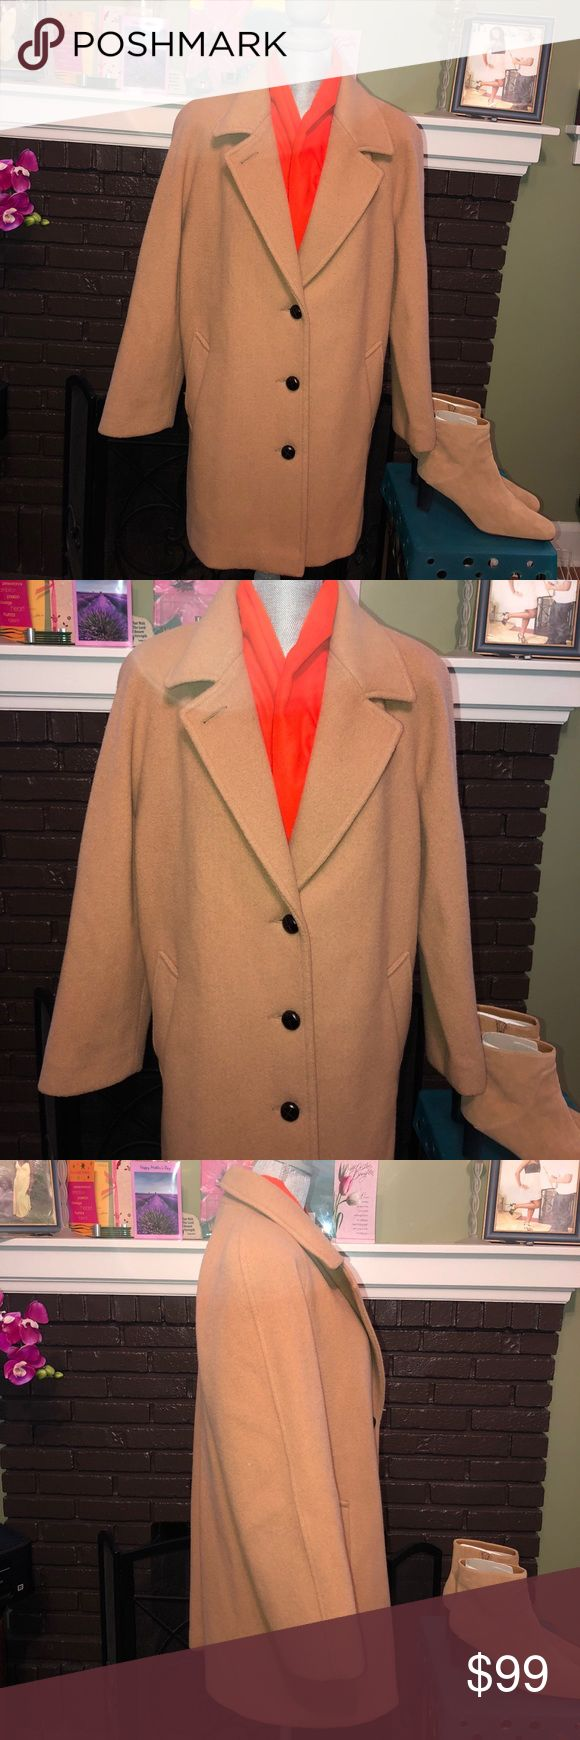 "🏦🛍Forecaster of Boston Camel Wool Coat Size 10 Forecaster of Boston Camel Wool Coat Size 10•Length from shoulder to hem is 33 "". Sleeve length is 25"",Bust measured Flat is 22"". Coat fits up to a size 12 nicely. Was $109 Forecaster of Boston Jackets & Coats"